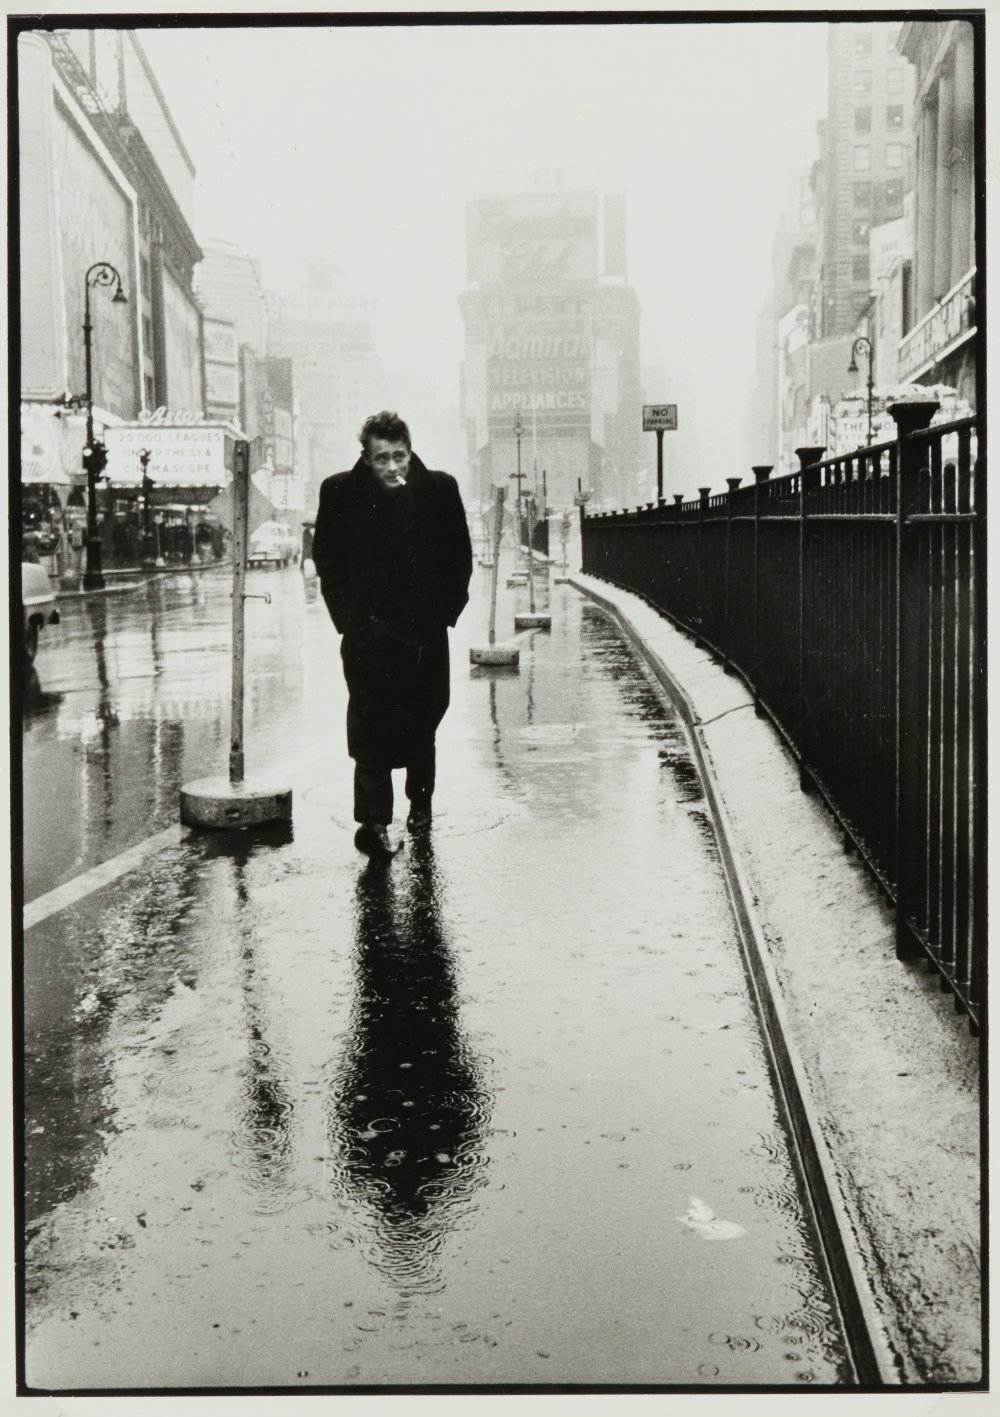 James Dean on Times Square, New York